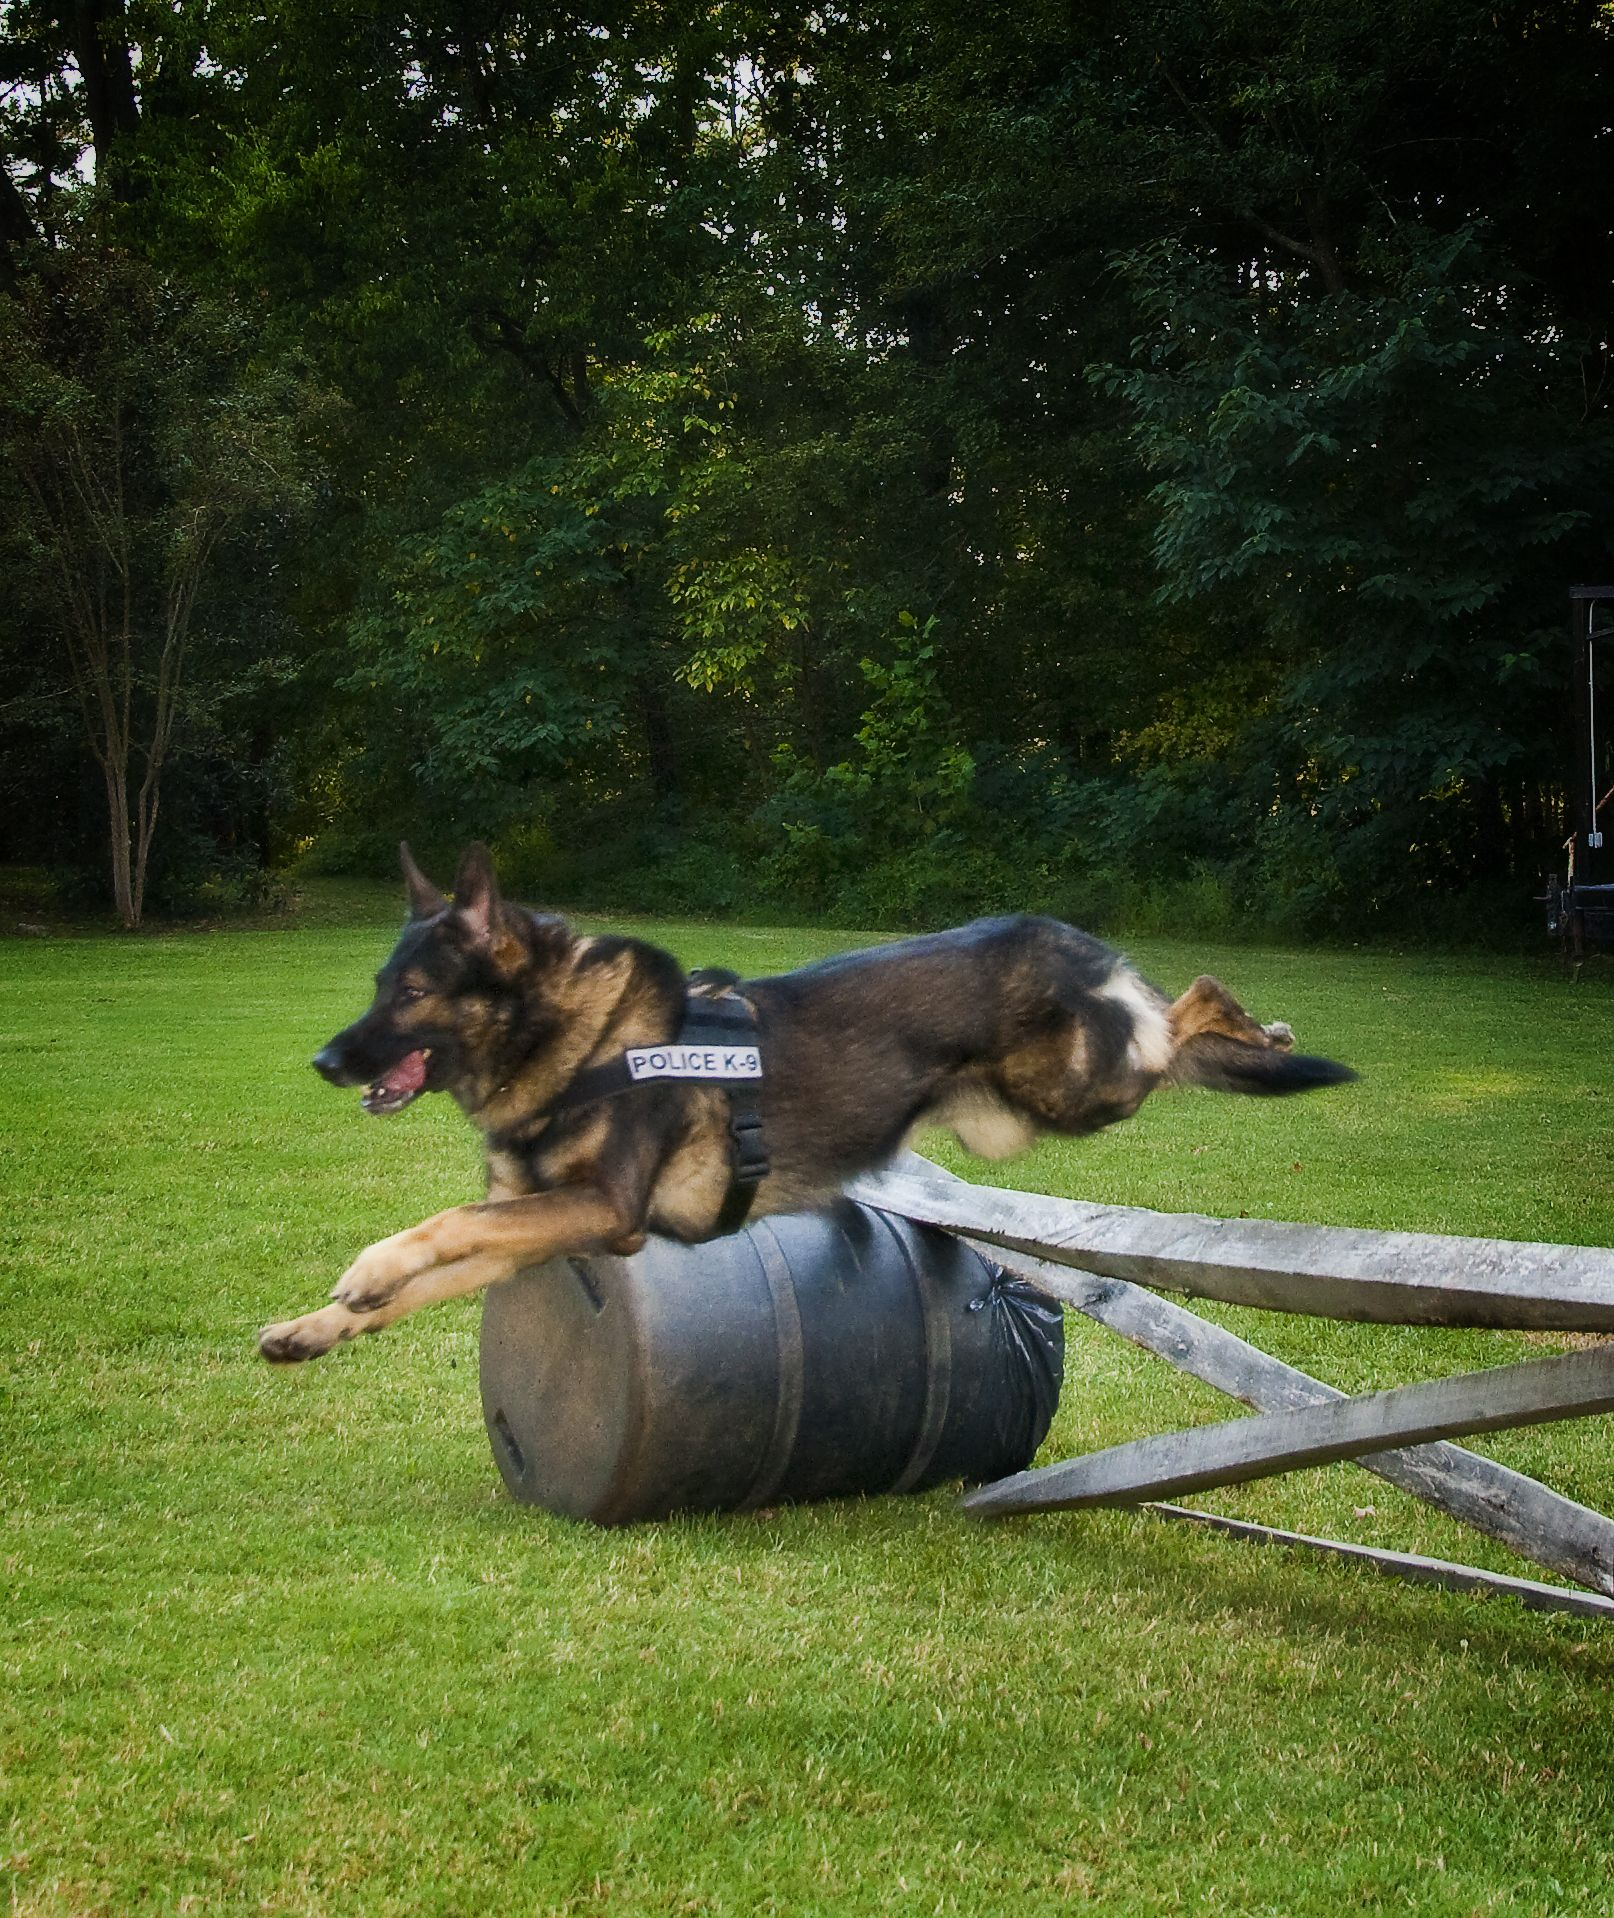 Police K9 Military working dogs, German sheperd dogs